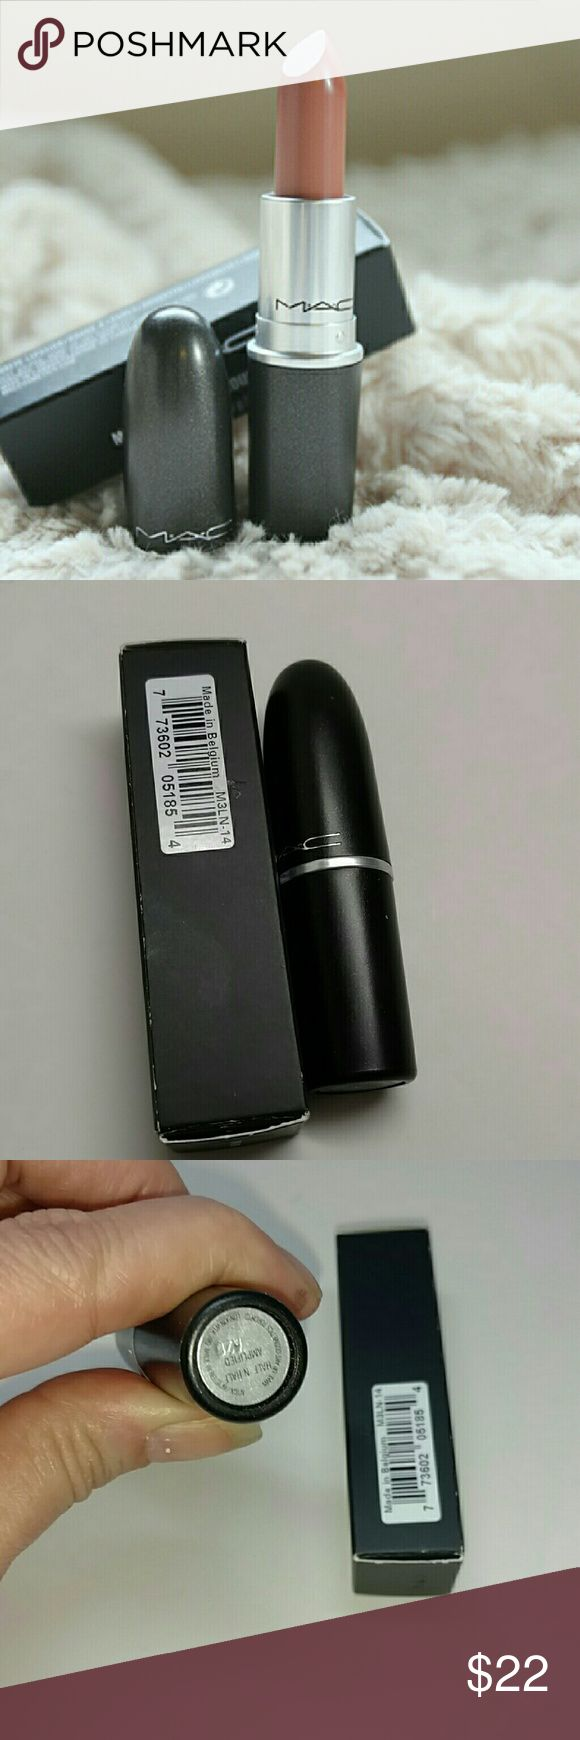 MAC ~ Velvet Teddy lipstick Authentic MAC matte lipstick color Velvet Teddy. Brand new with box never tested or used. Sexy nude! MAC Cosmetics Makeup Lipstick